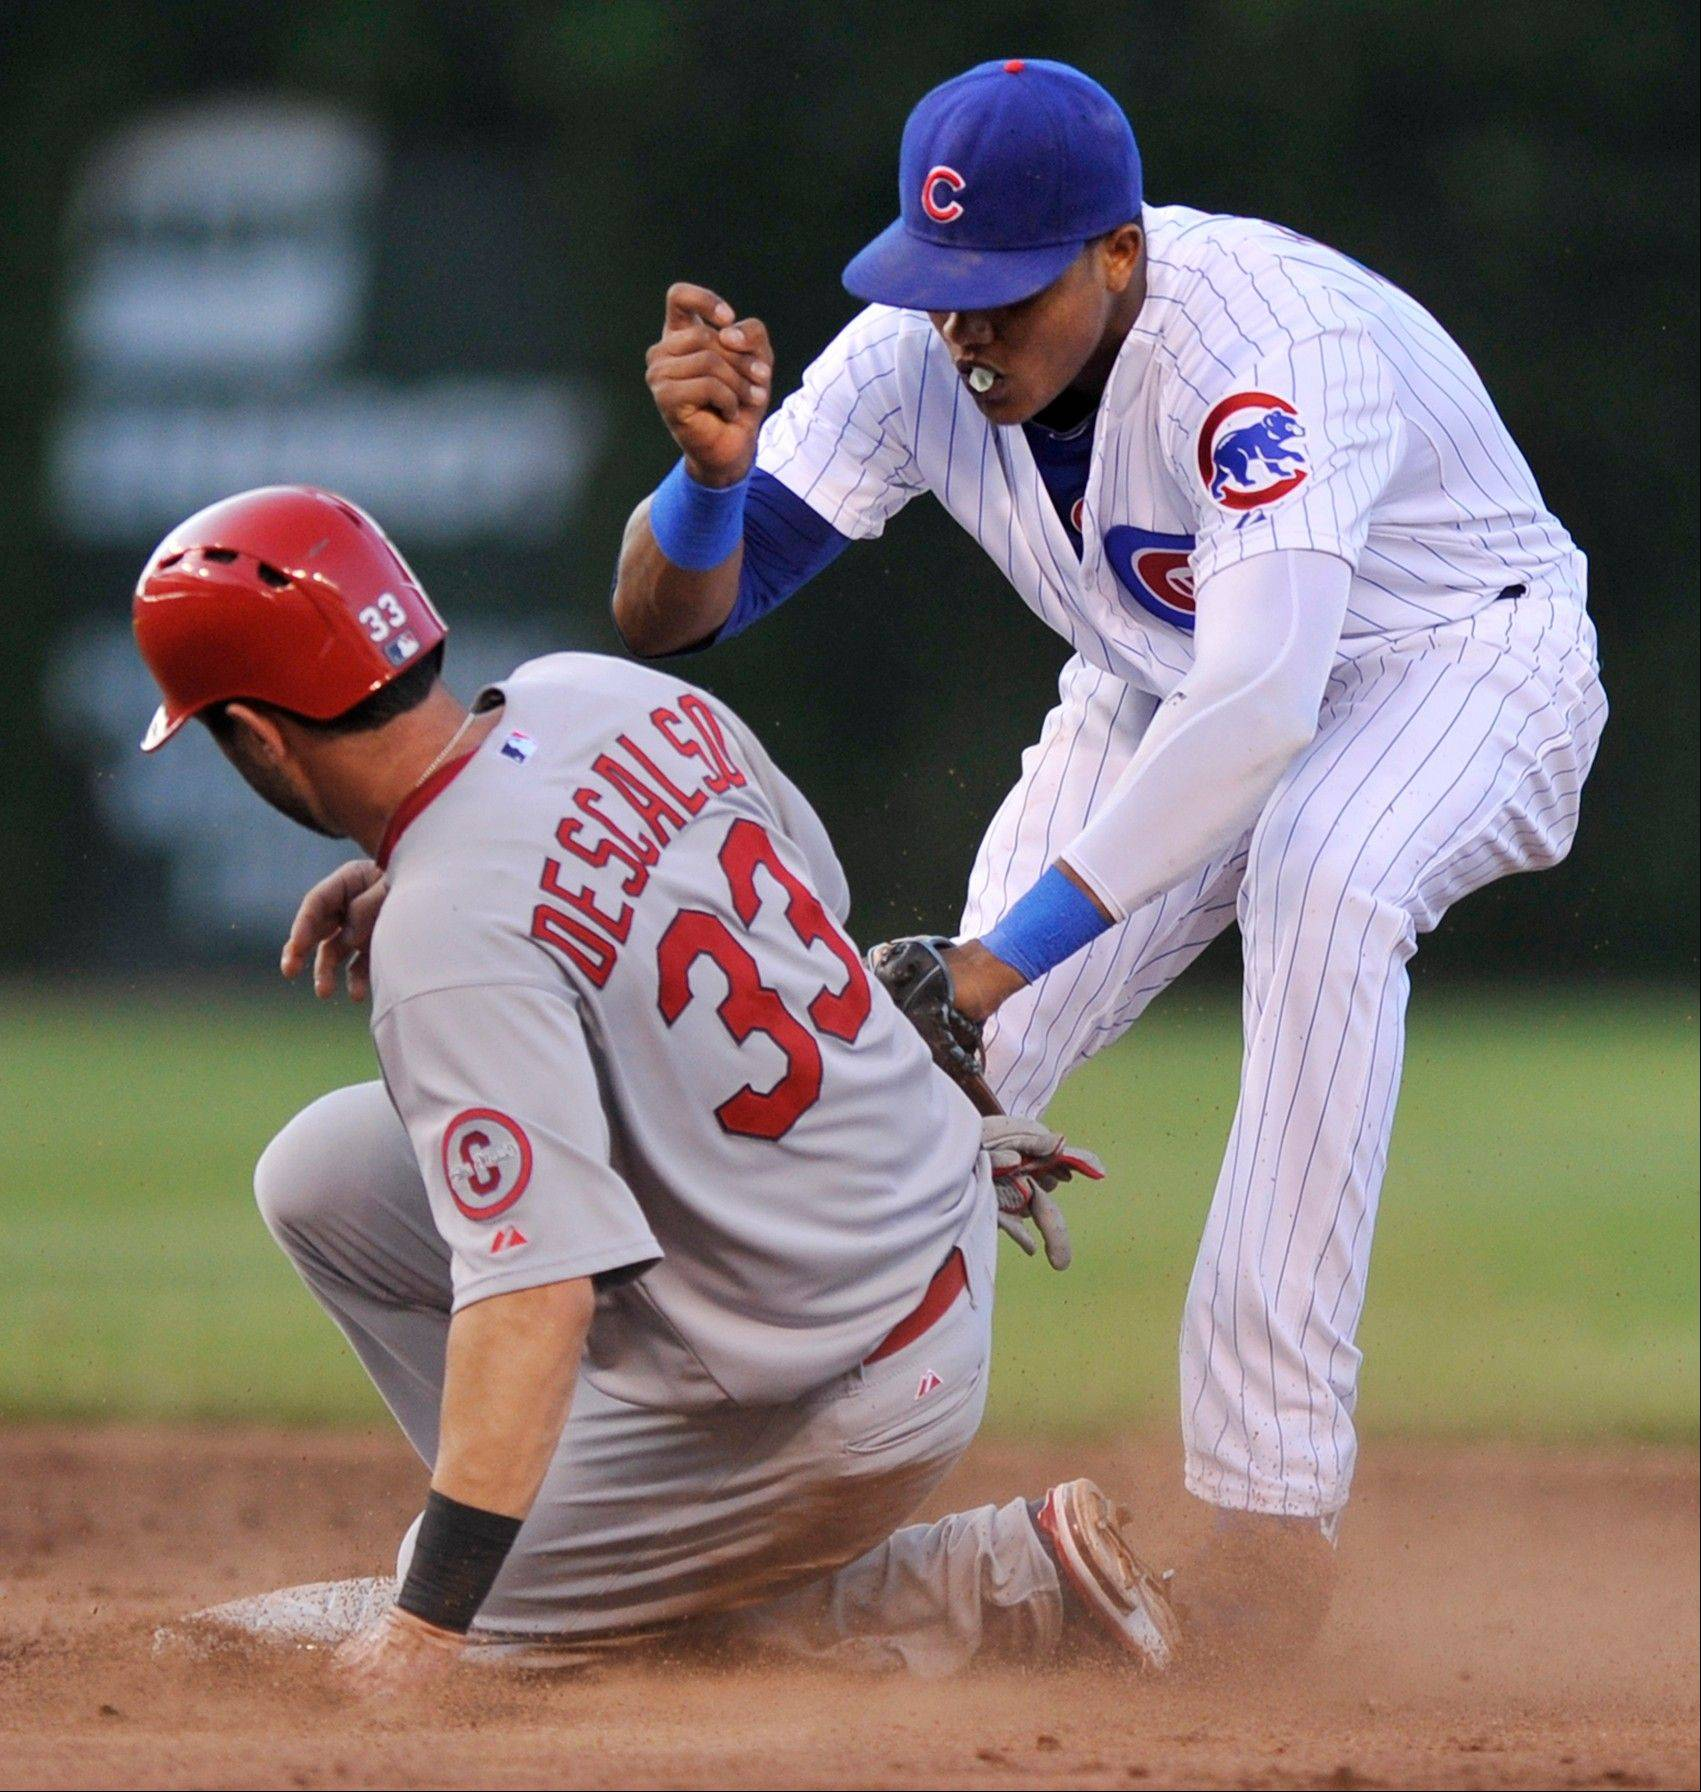 Chicago Cubs shortstop Starlin Castro, right, tags out St. Louis Cardinals' Daniel Descalso (33) who was trying to steal second base during the third inning of a baseball game in Chicago, Saturday, July 13, 2013.